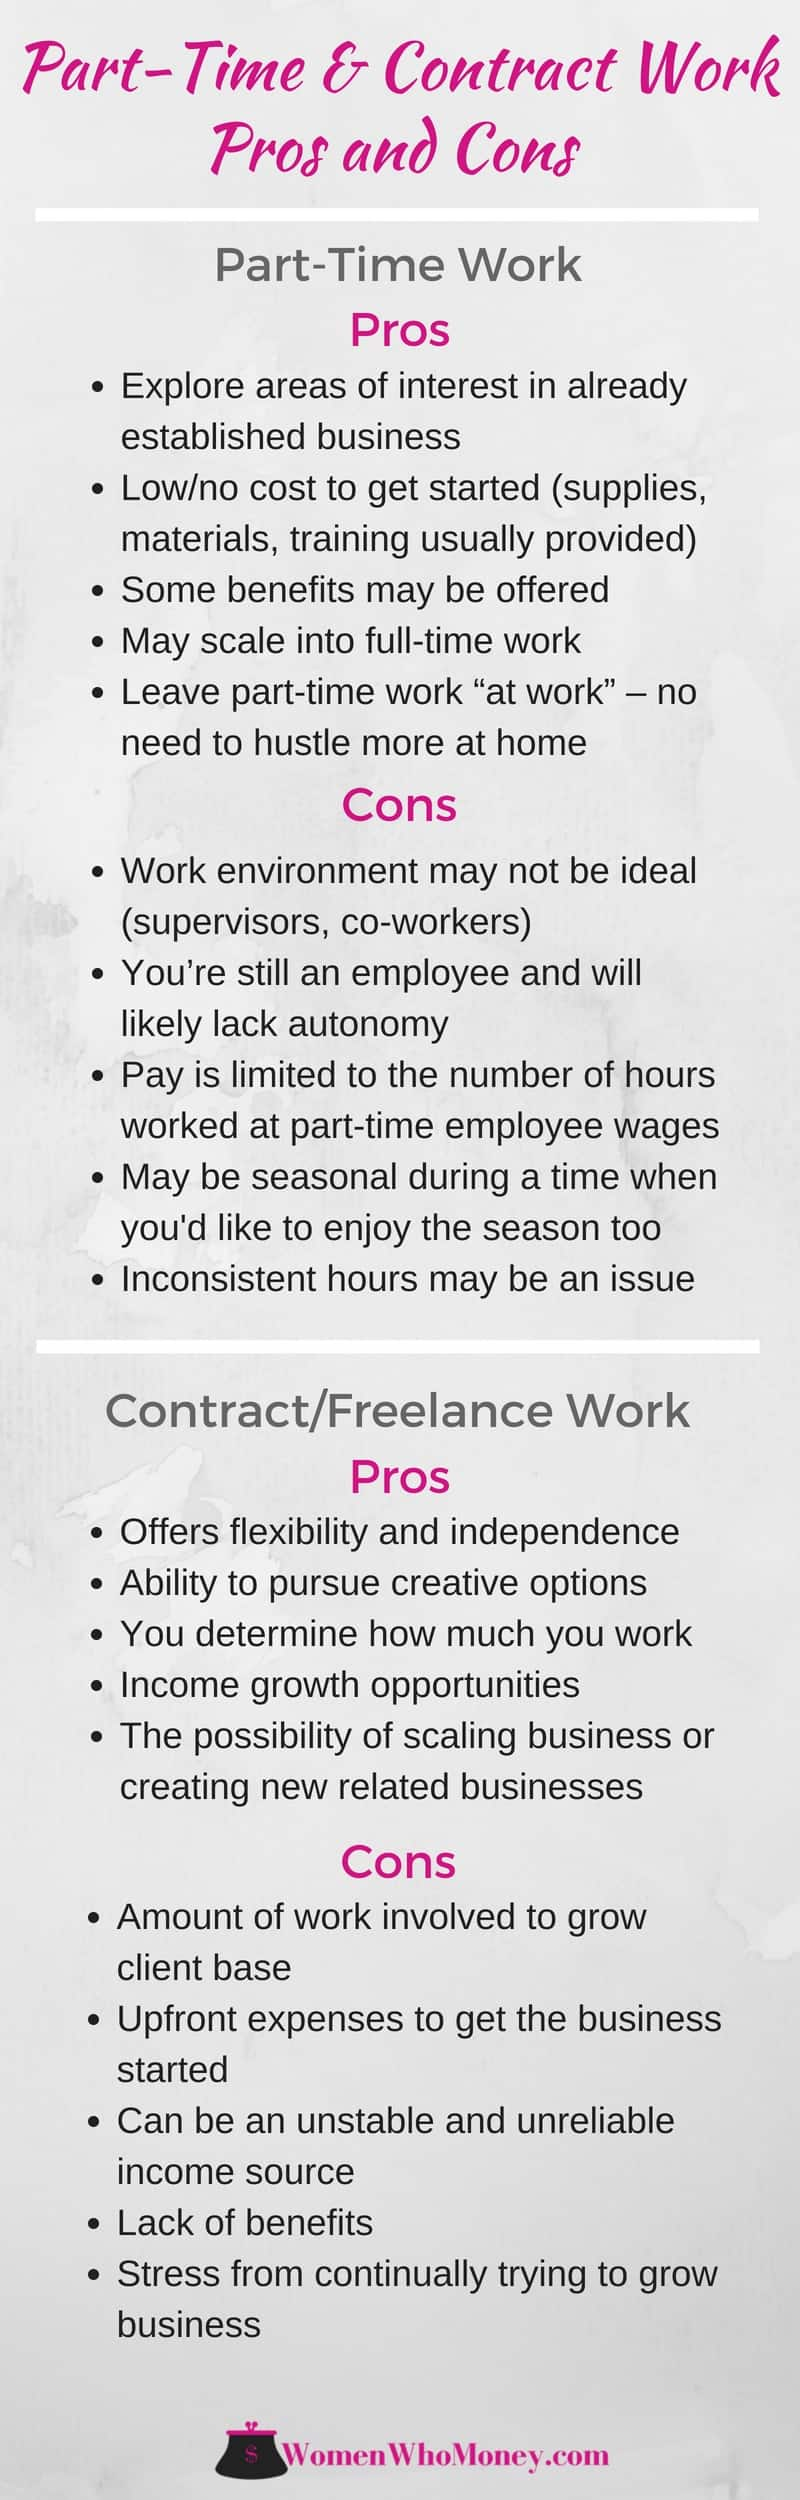 Understanding the differences between part-time work and contract work, as well as the tax implications and the benefits and drawbacks, can help you make the best decision for your particular situation and interests.#freelance #independentcontractor